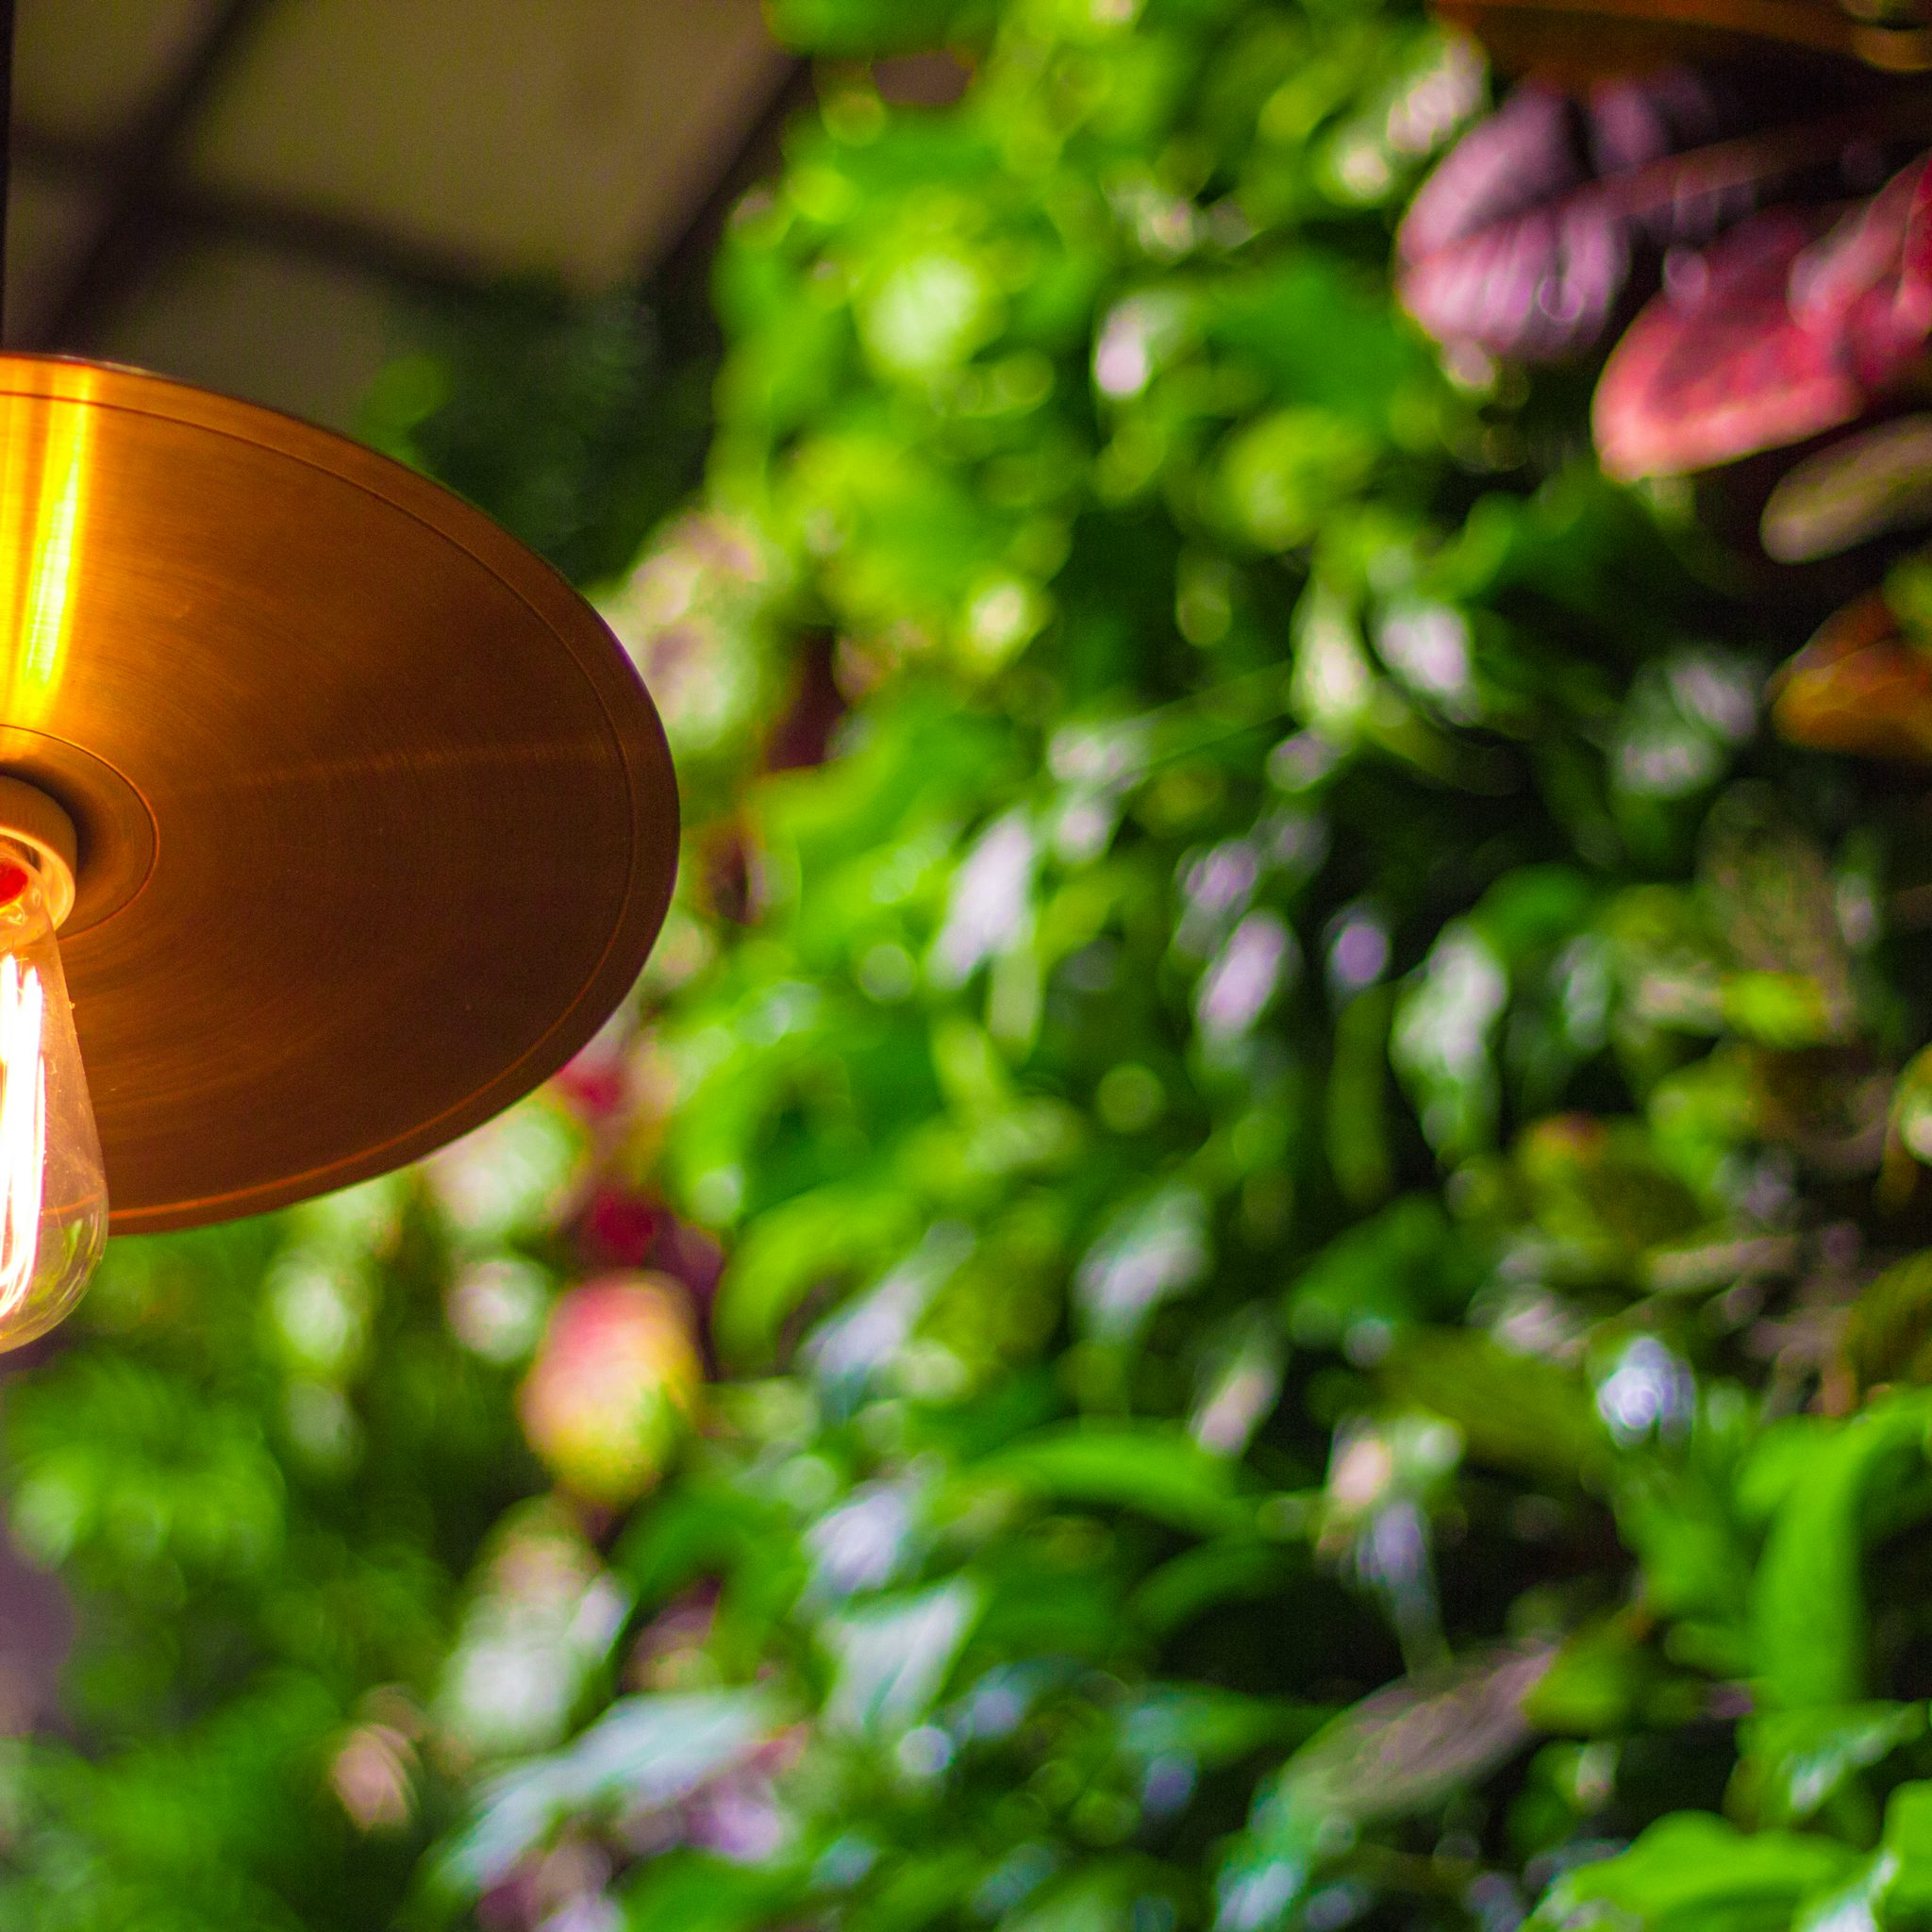 on-site restaurant garden edison light bulb fixture